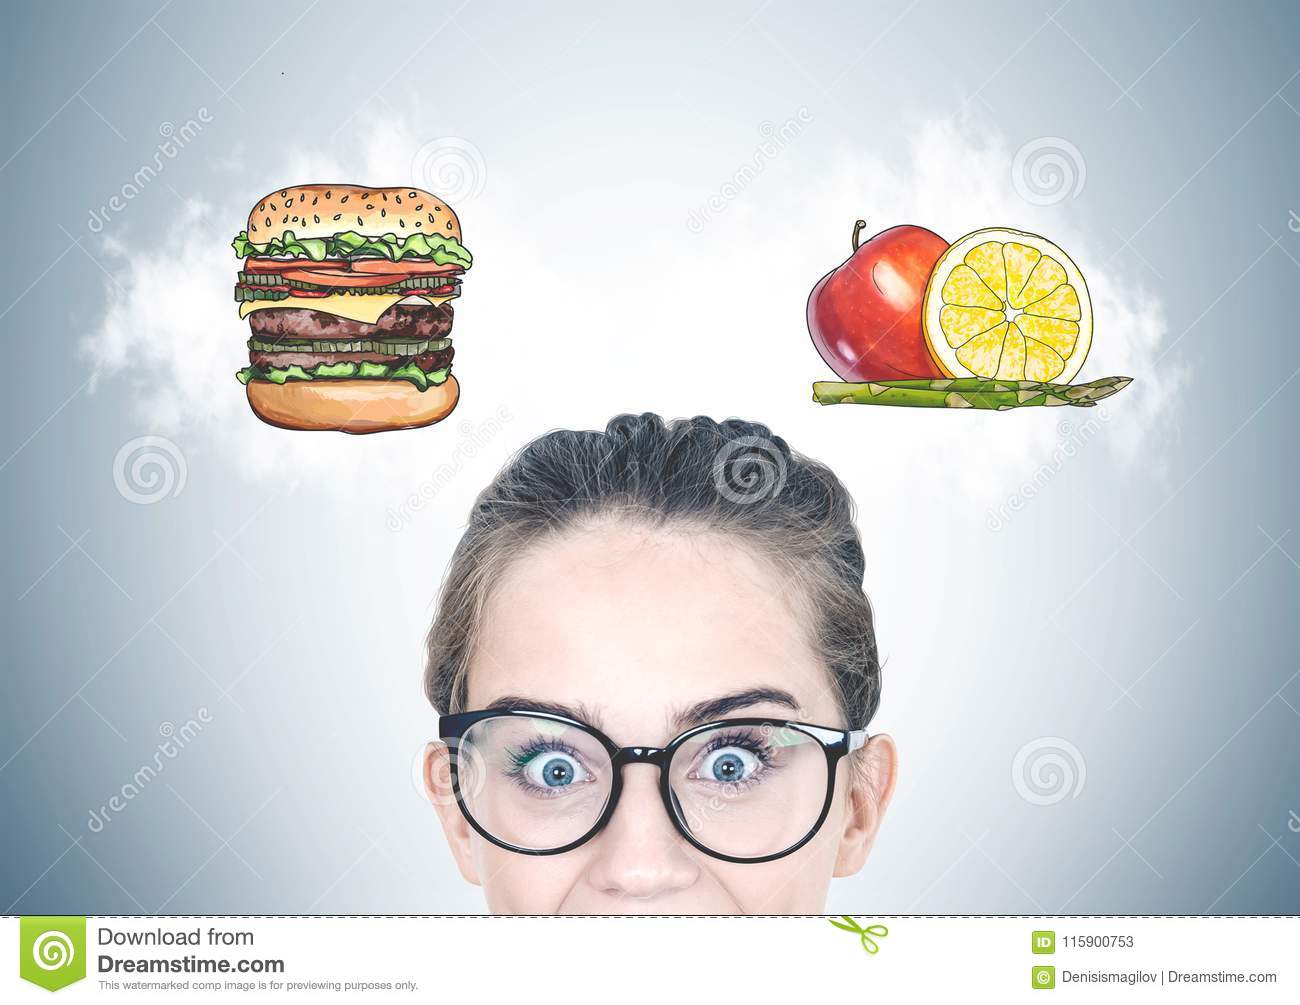 Astonished teen girl in glasses, food choice